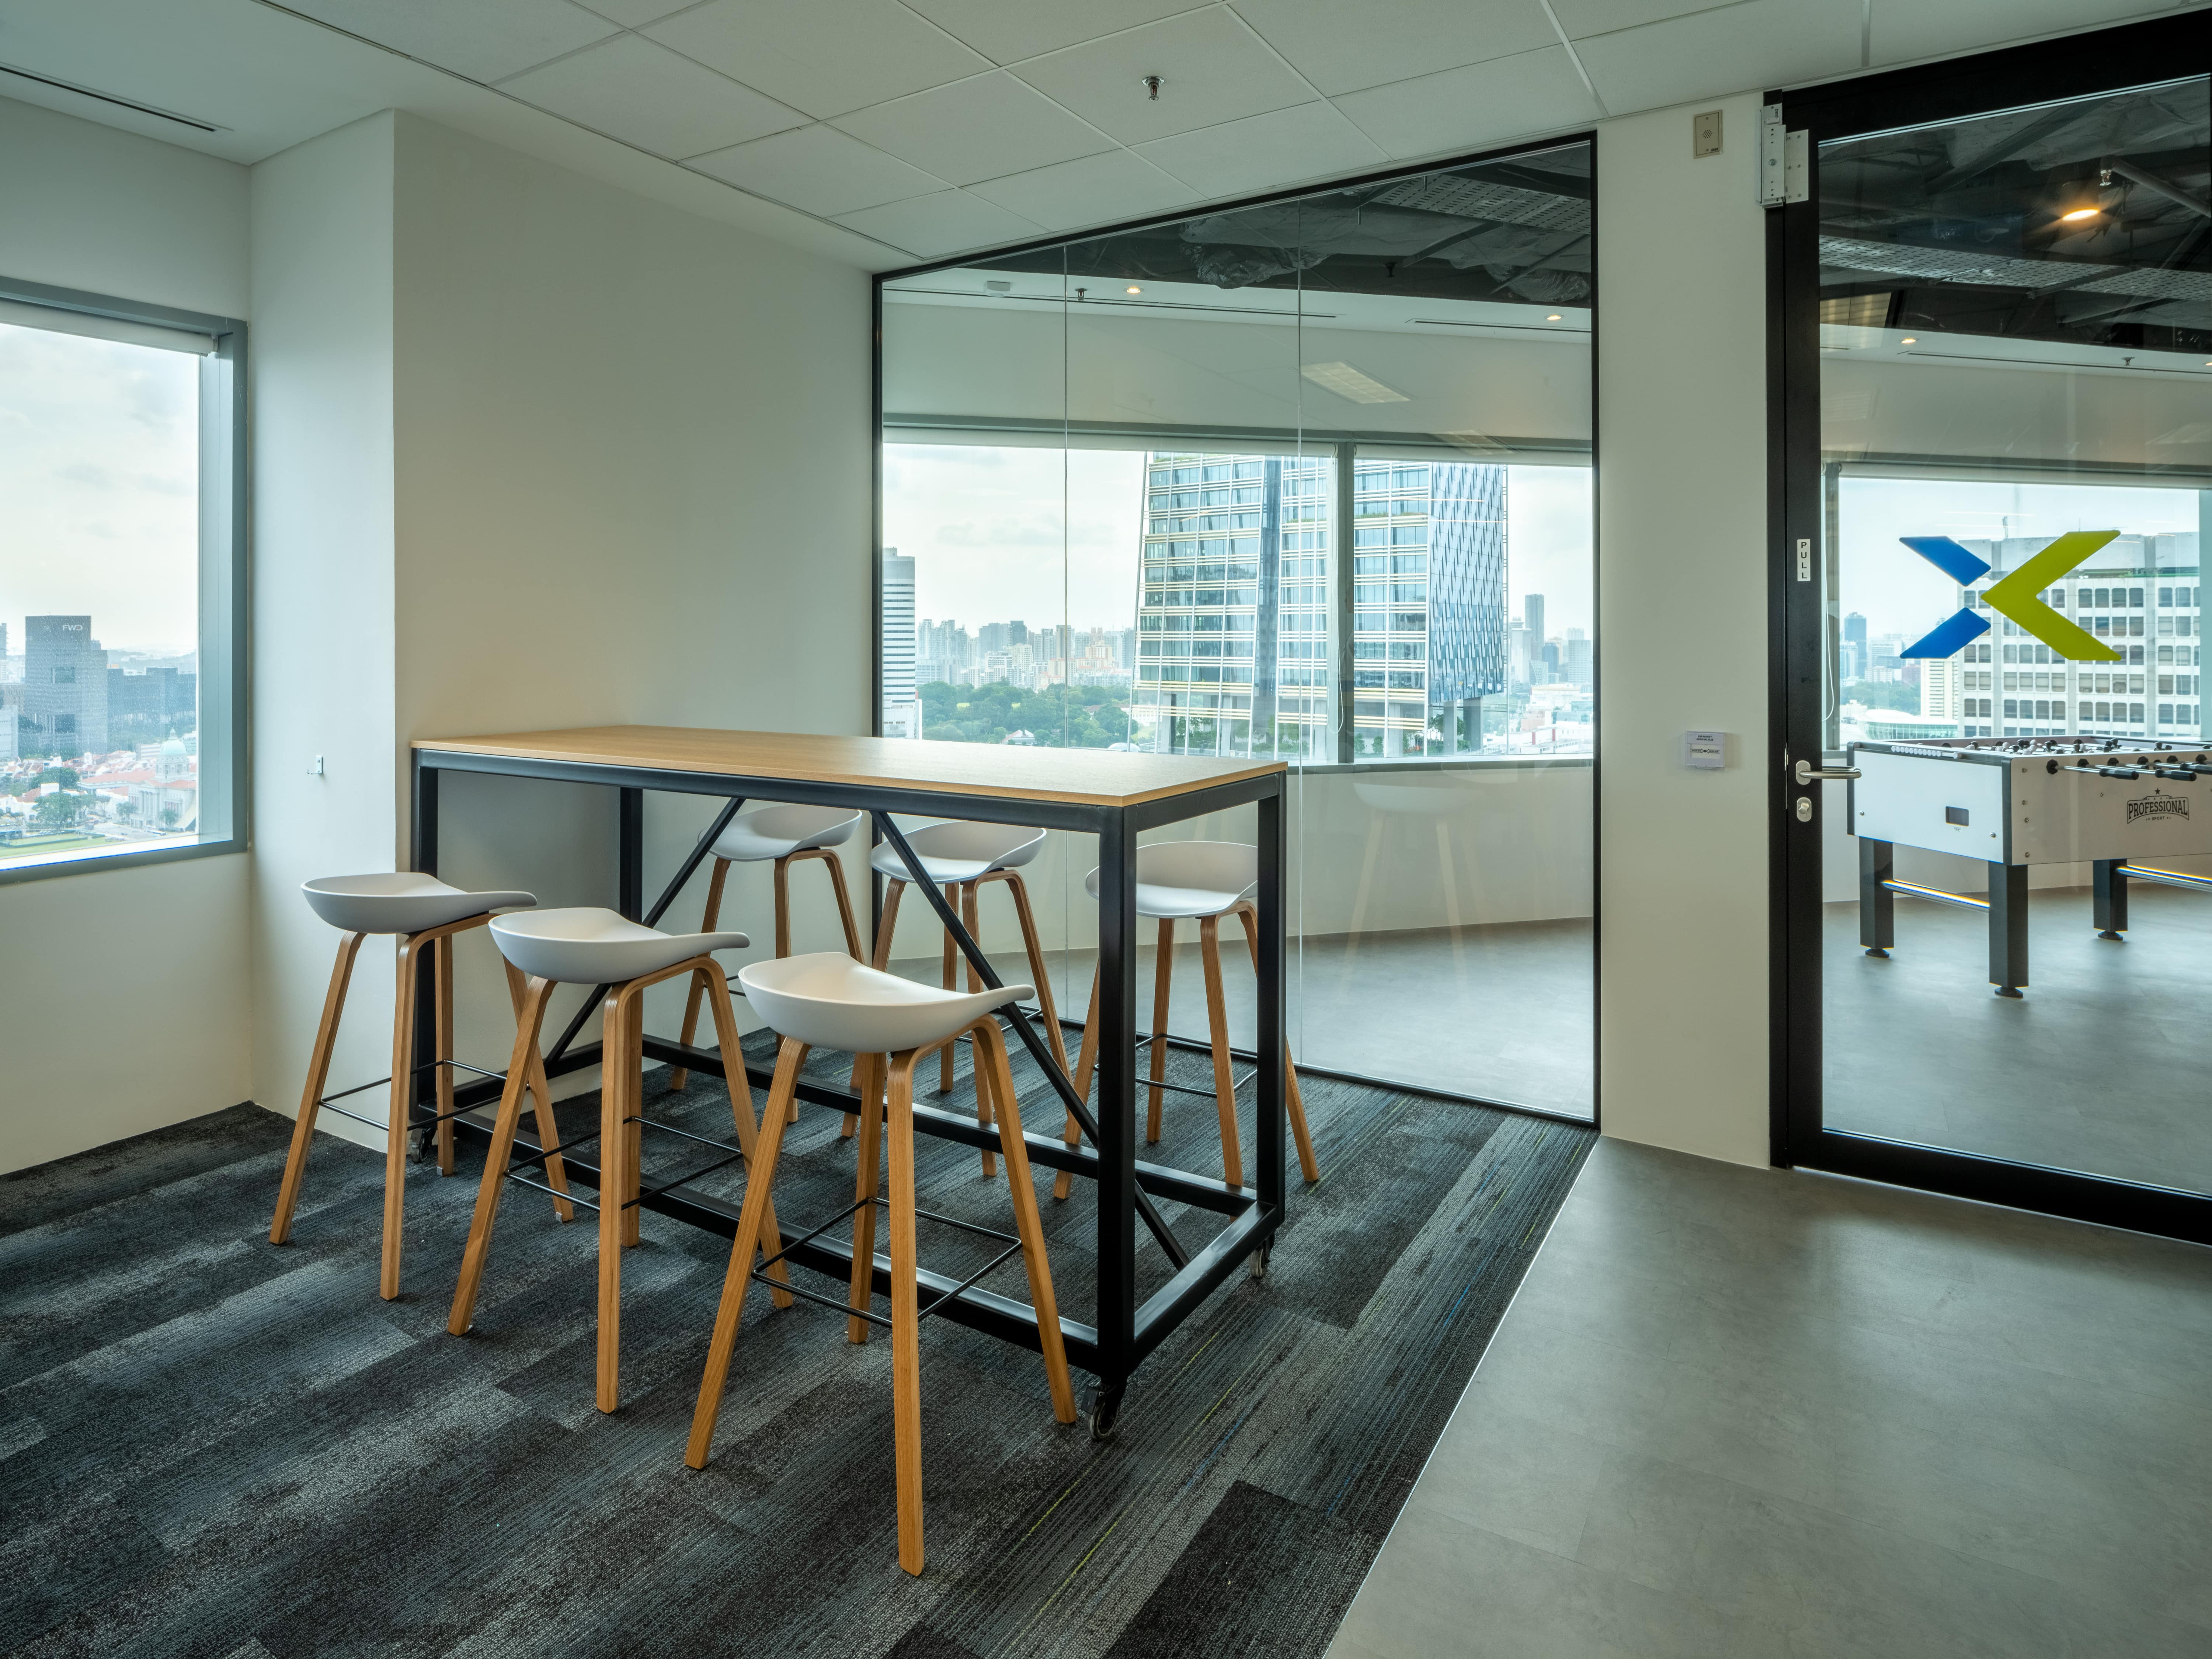 At the Nutanix Singapore office, Space Matrix factored in various design elements that lead to sustainable and energy-efficient light and water use